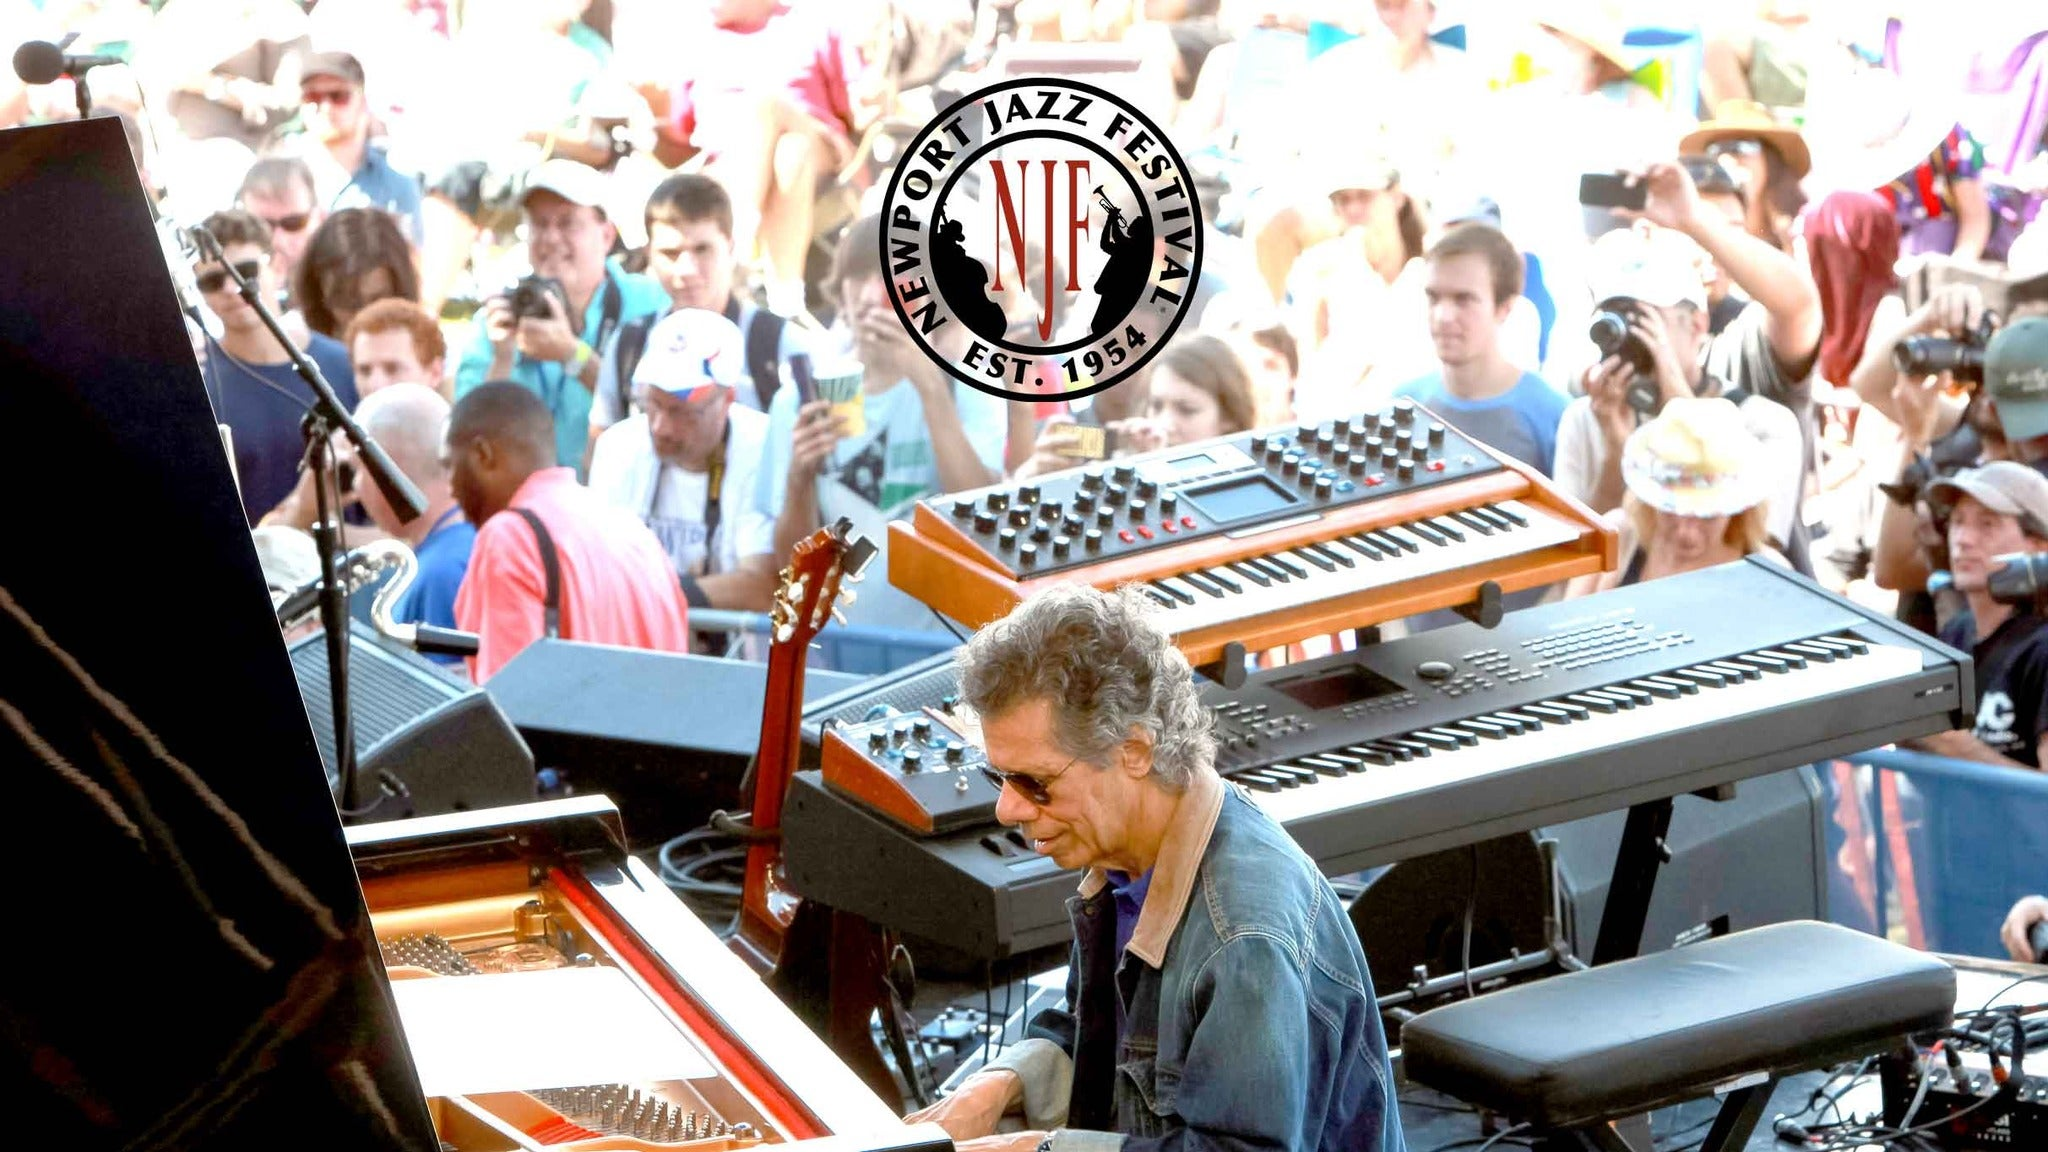 Newport Jazz Festival: Friday at Fort Adams State Park